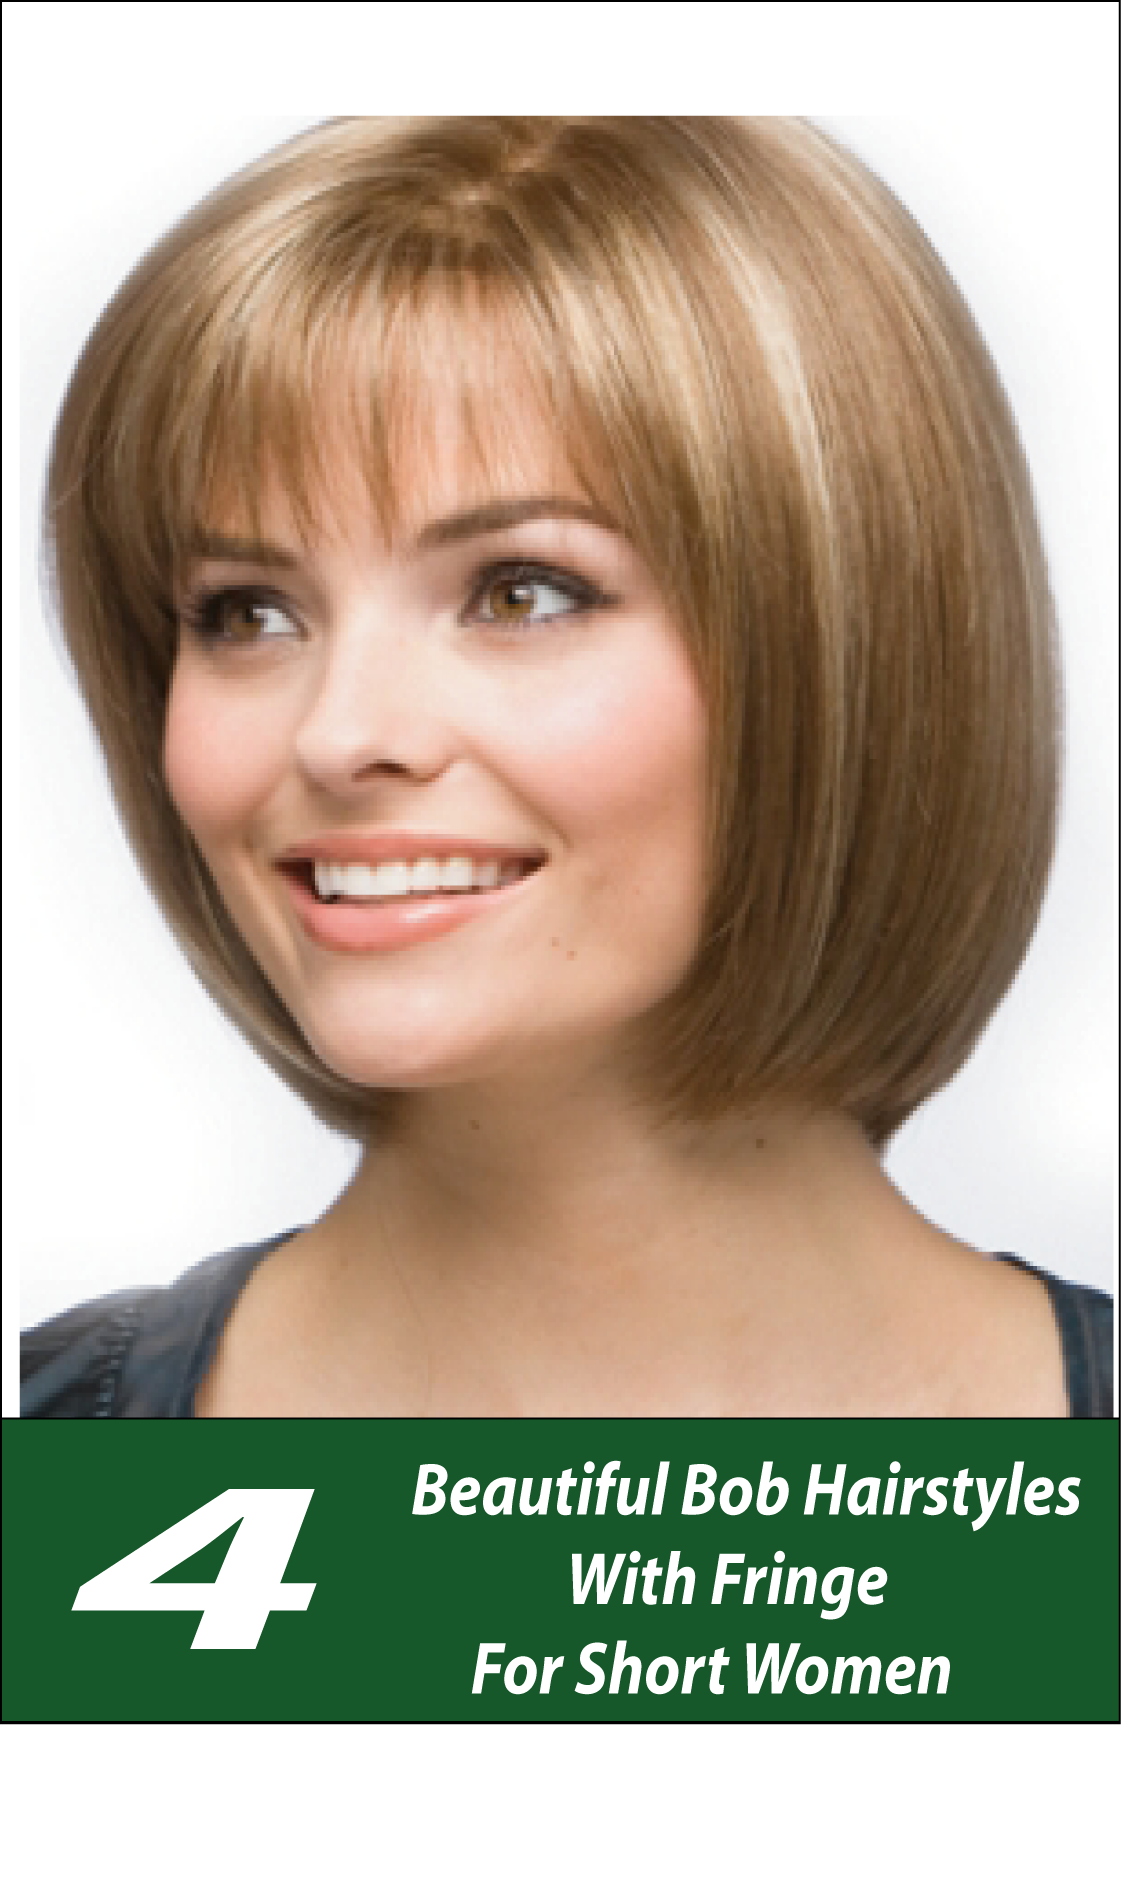 4 Beautiful Bob Hairstyles With Fringe For Short Women